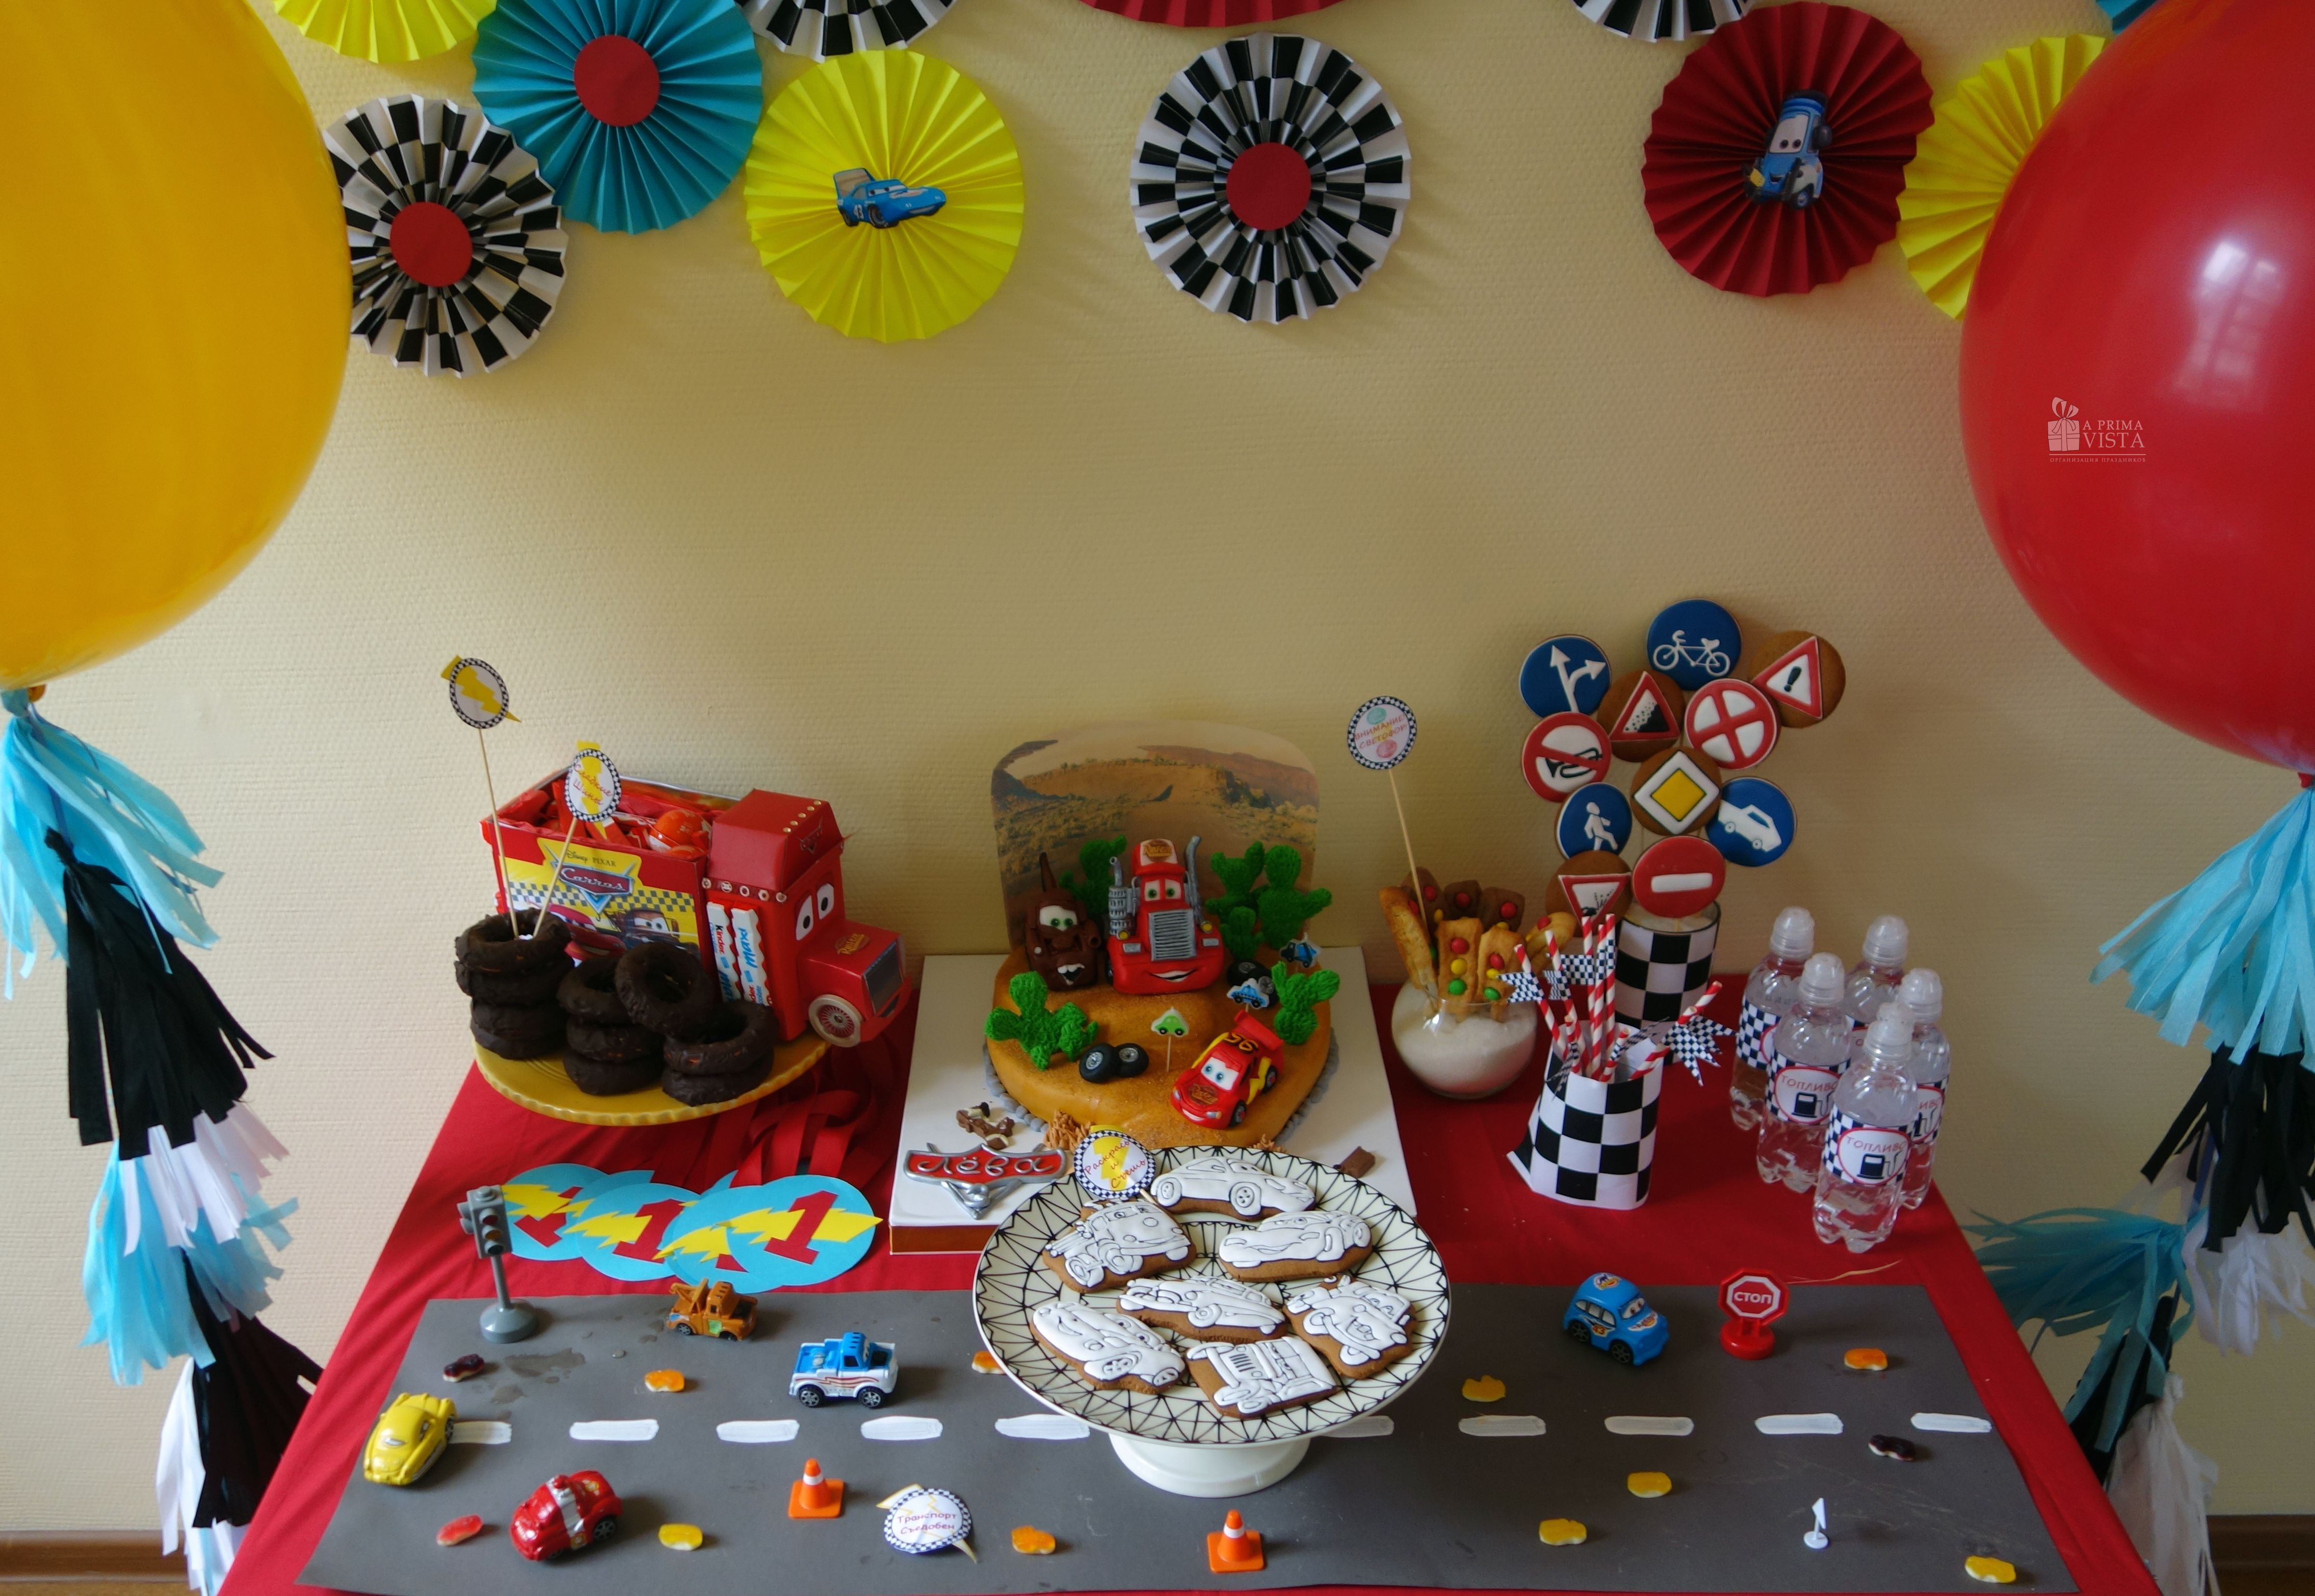 Candy bar. Paper decor. Cars style. 3d birthday for boy. Cartoon. McQueen. Balloons. Tassel garland. Tussel garland. Ginger cookies. Fuel. Cake.